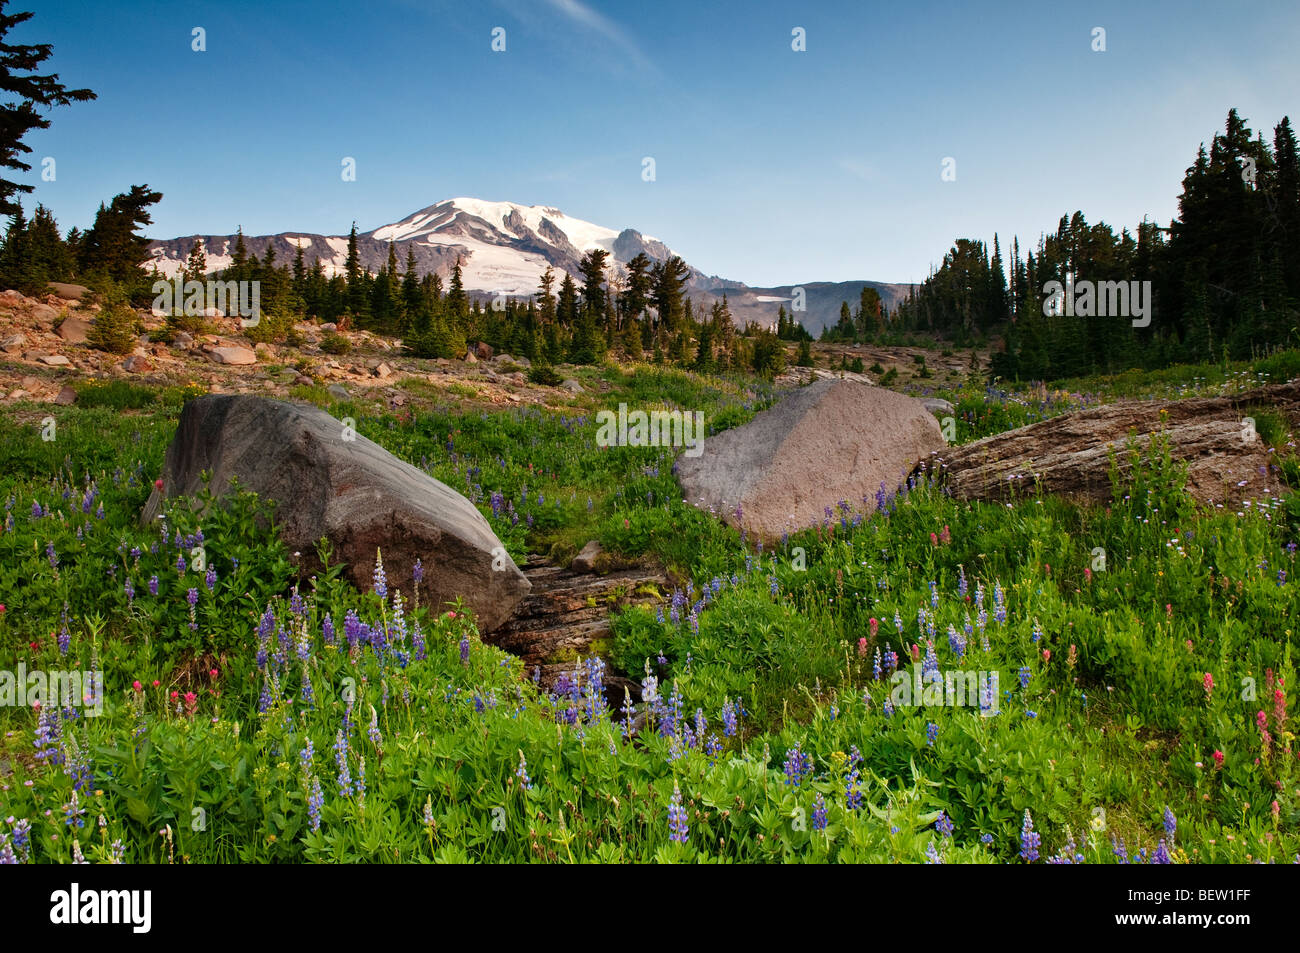 Mount Adams and wildflowers at Bird Creek Meadows Yakama Indian Reservation Washington - Stock Image